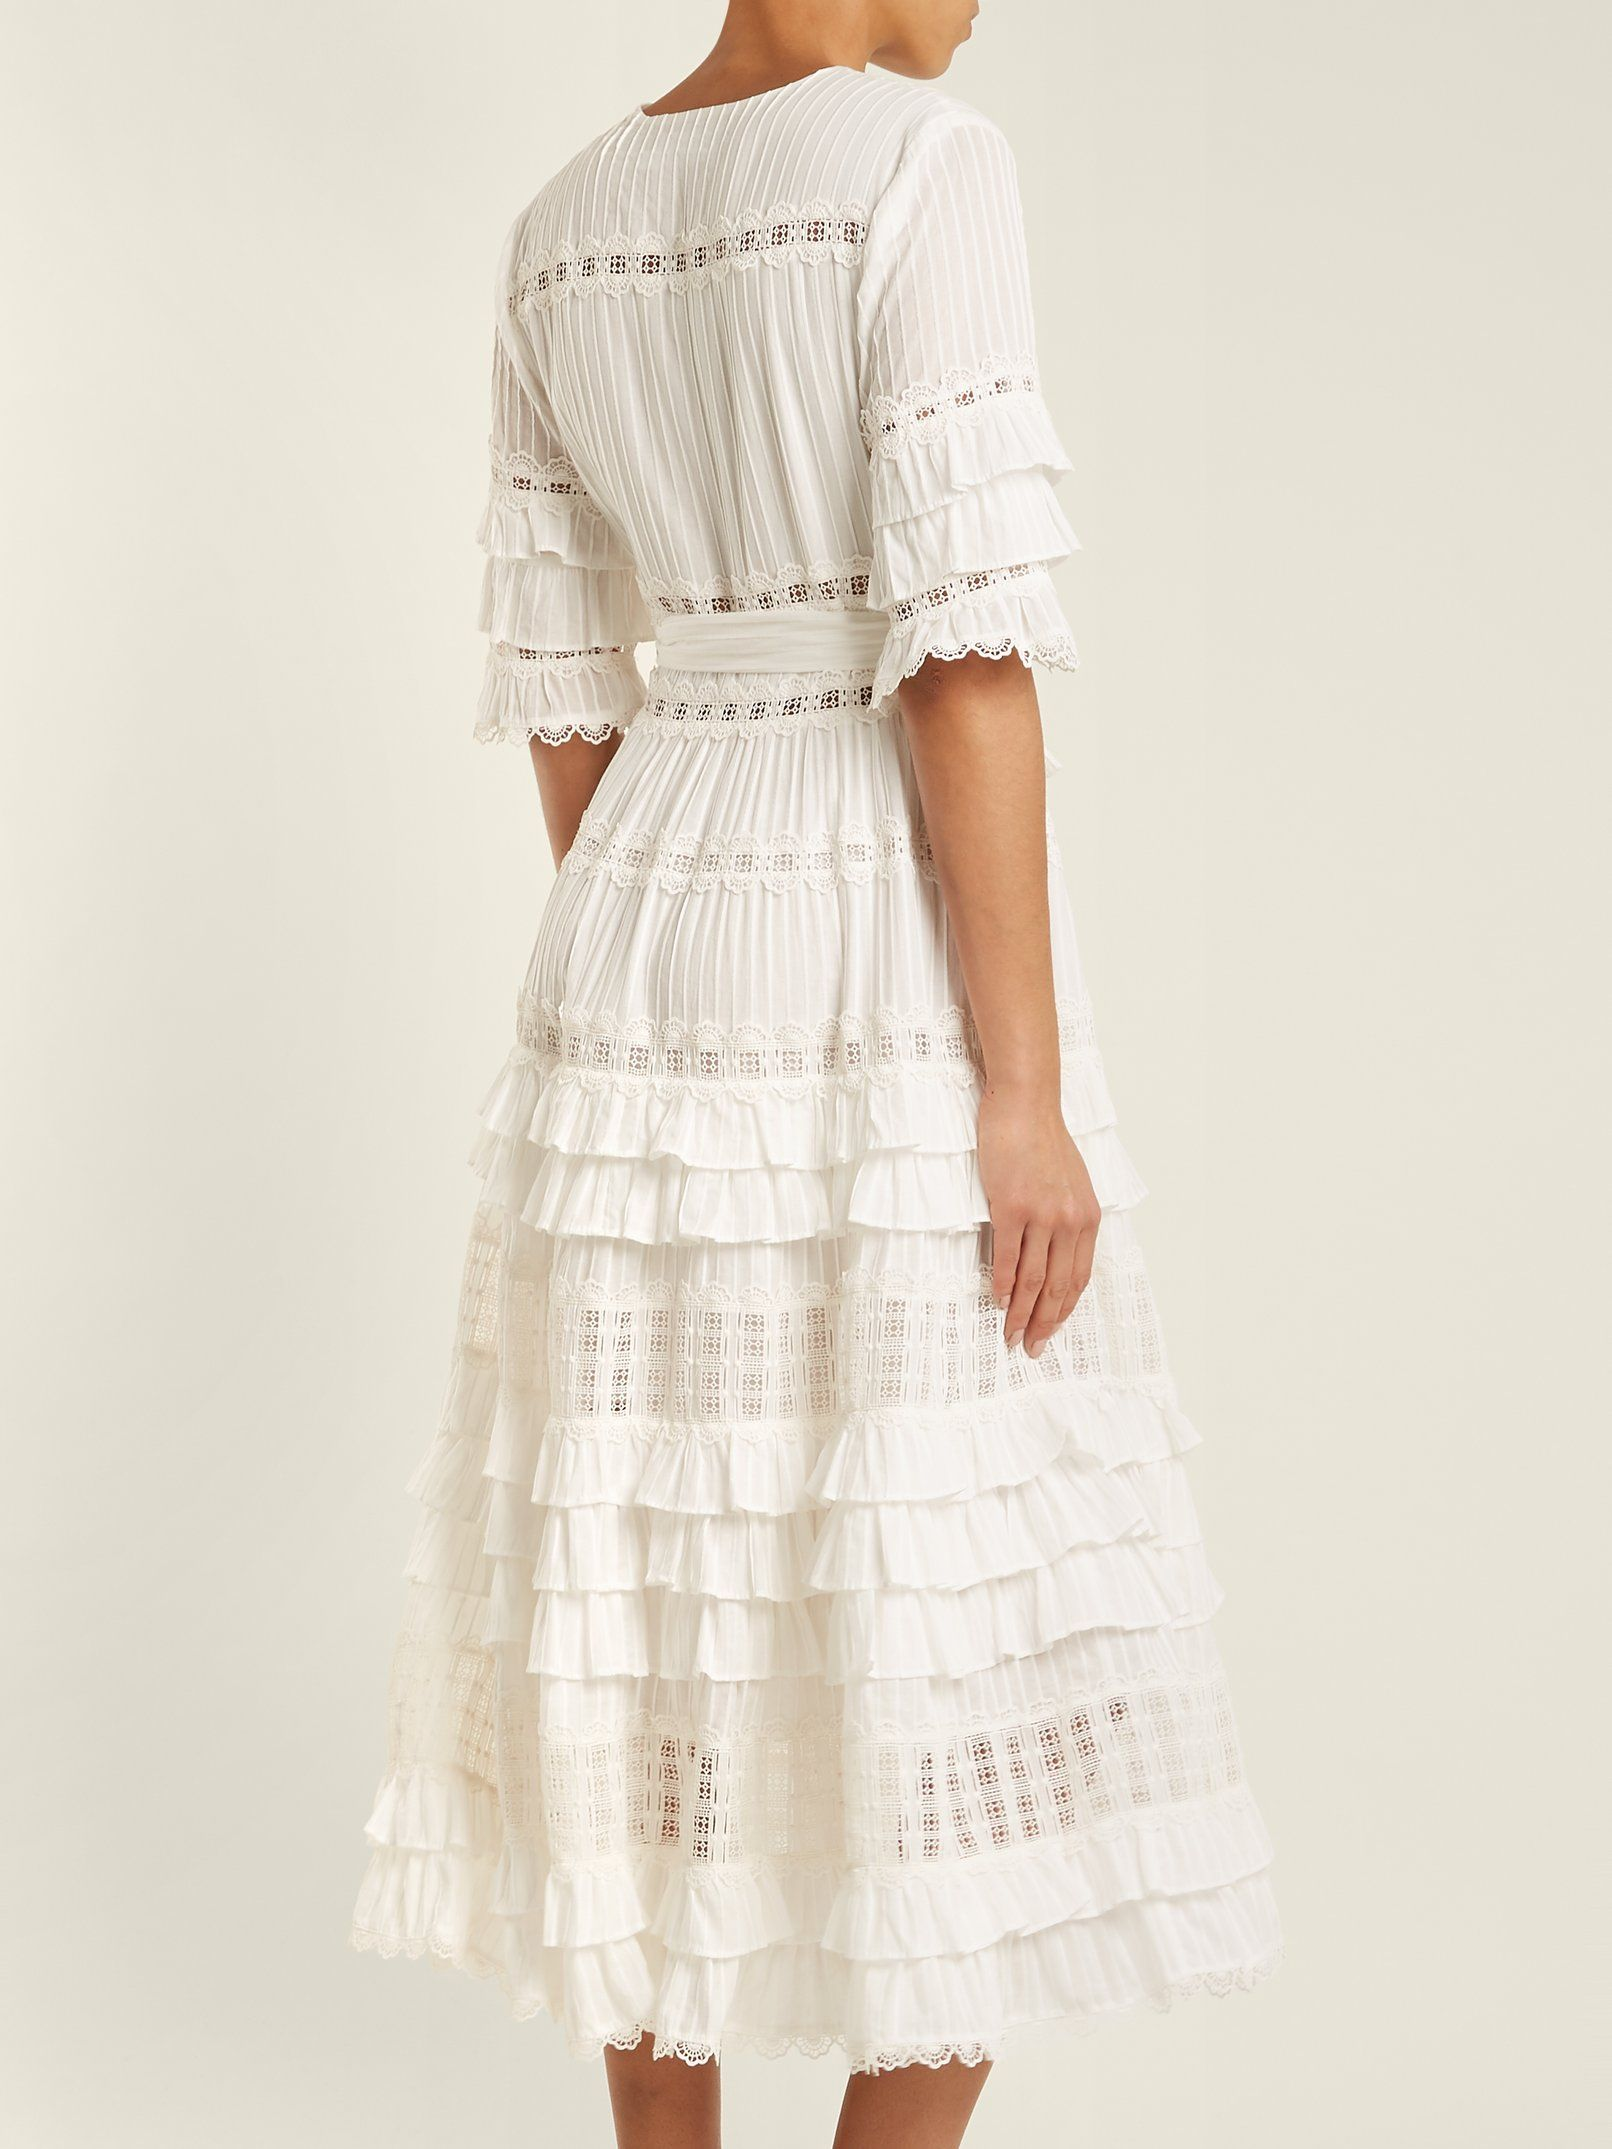 Corsail lace-insert cotton dress Zimmermann